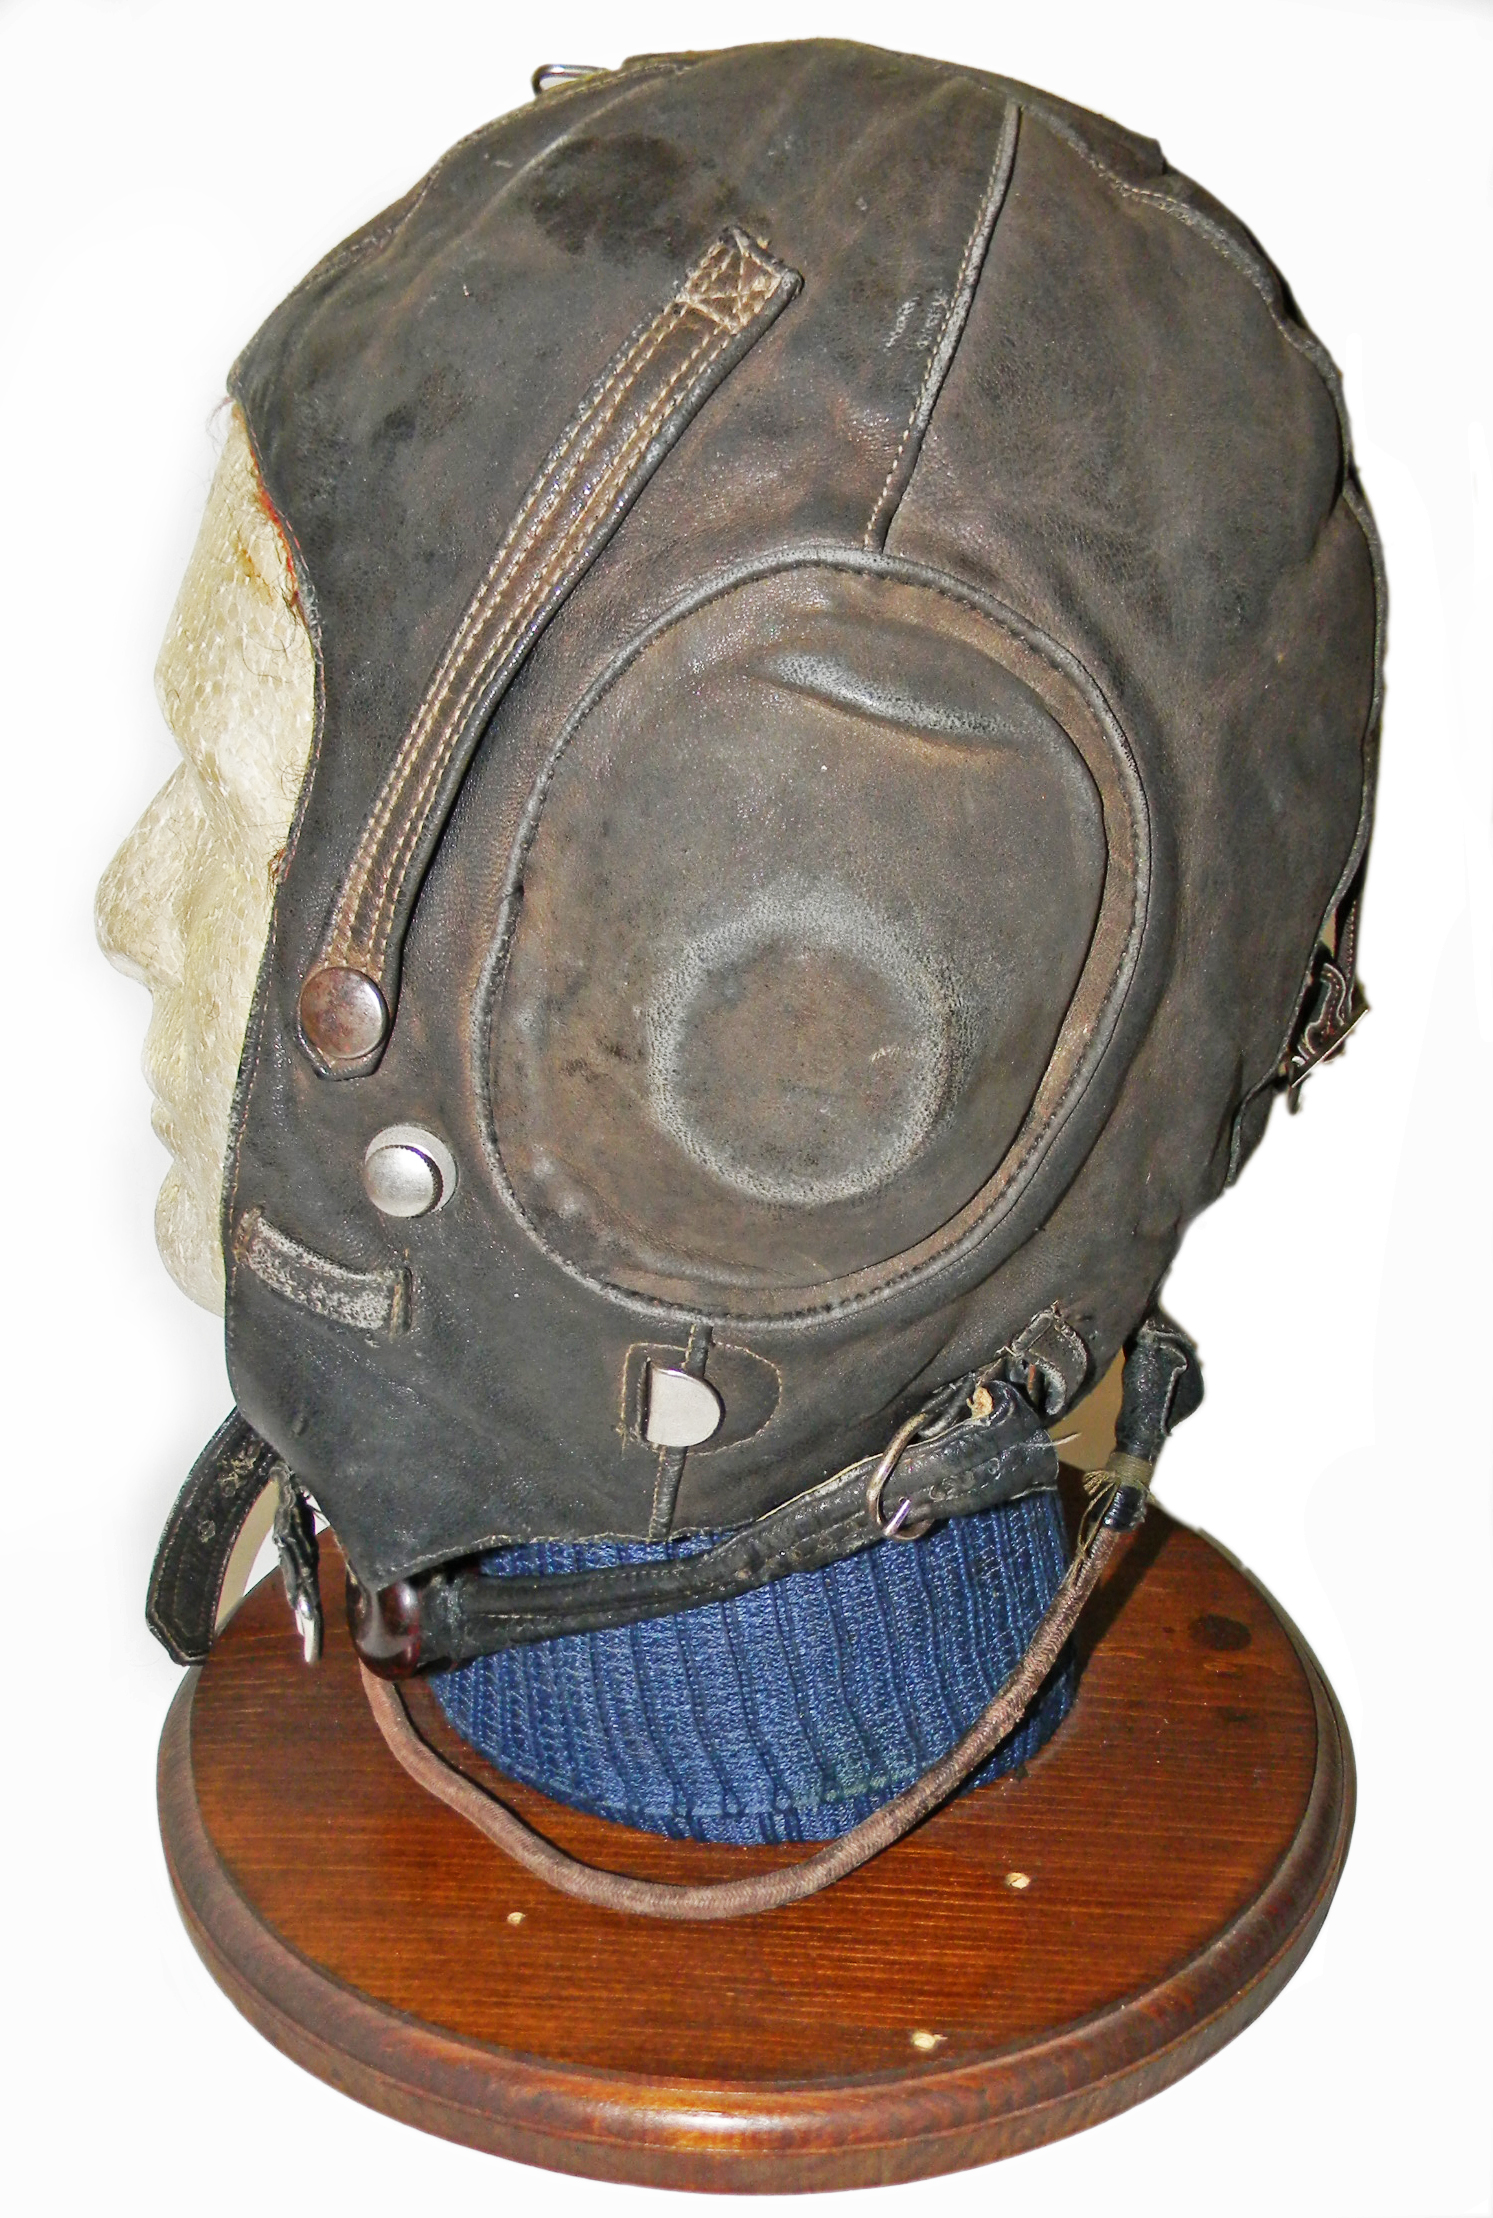 WWII USSR radio flying helmet